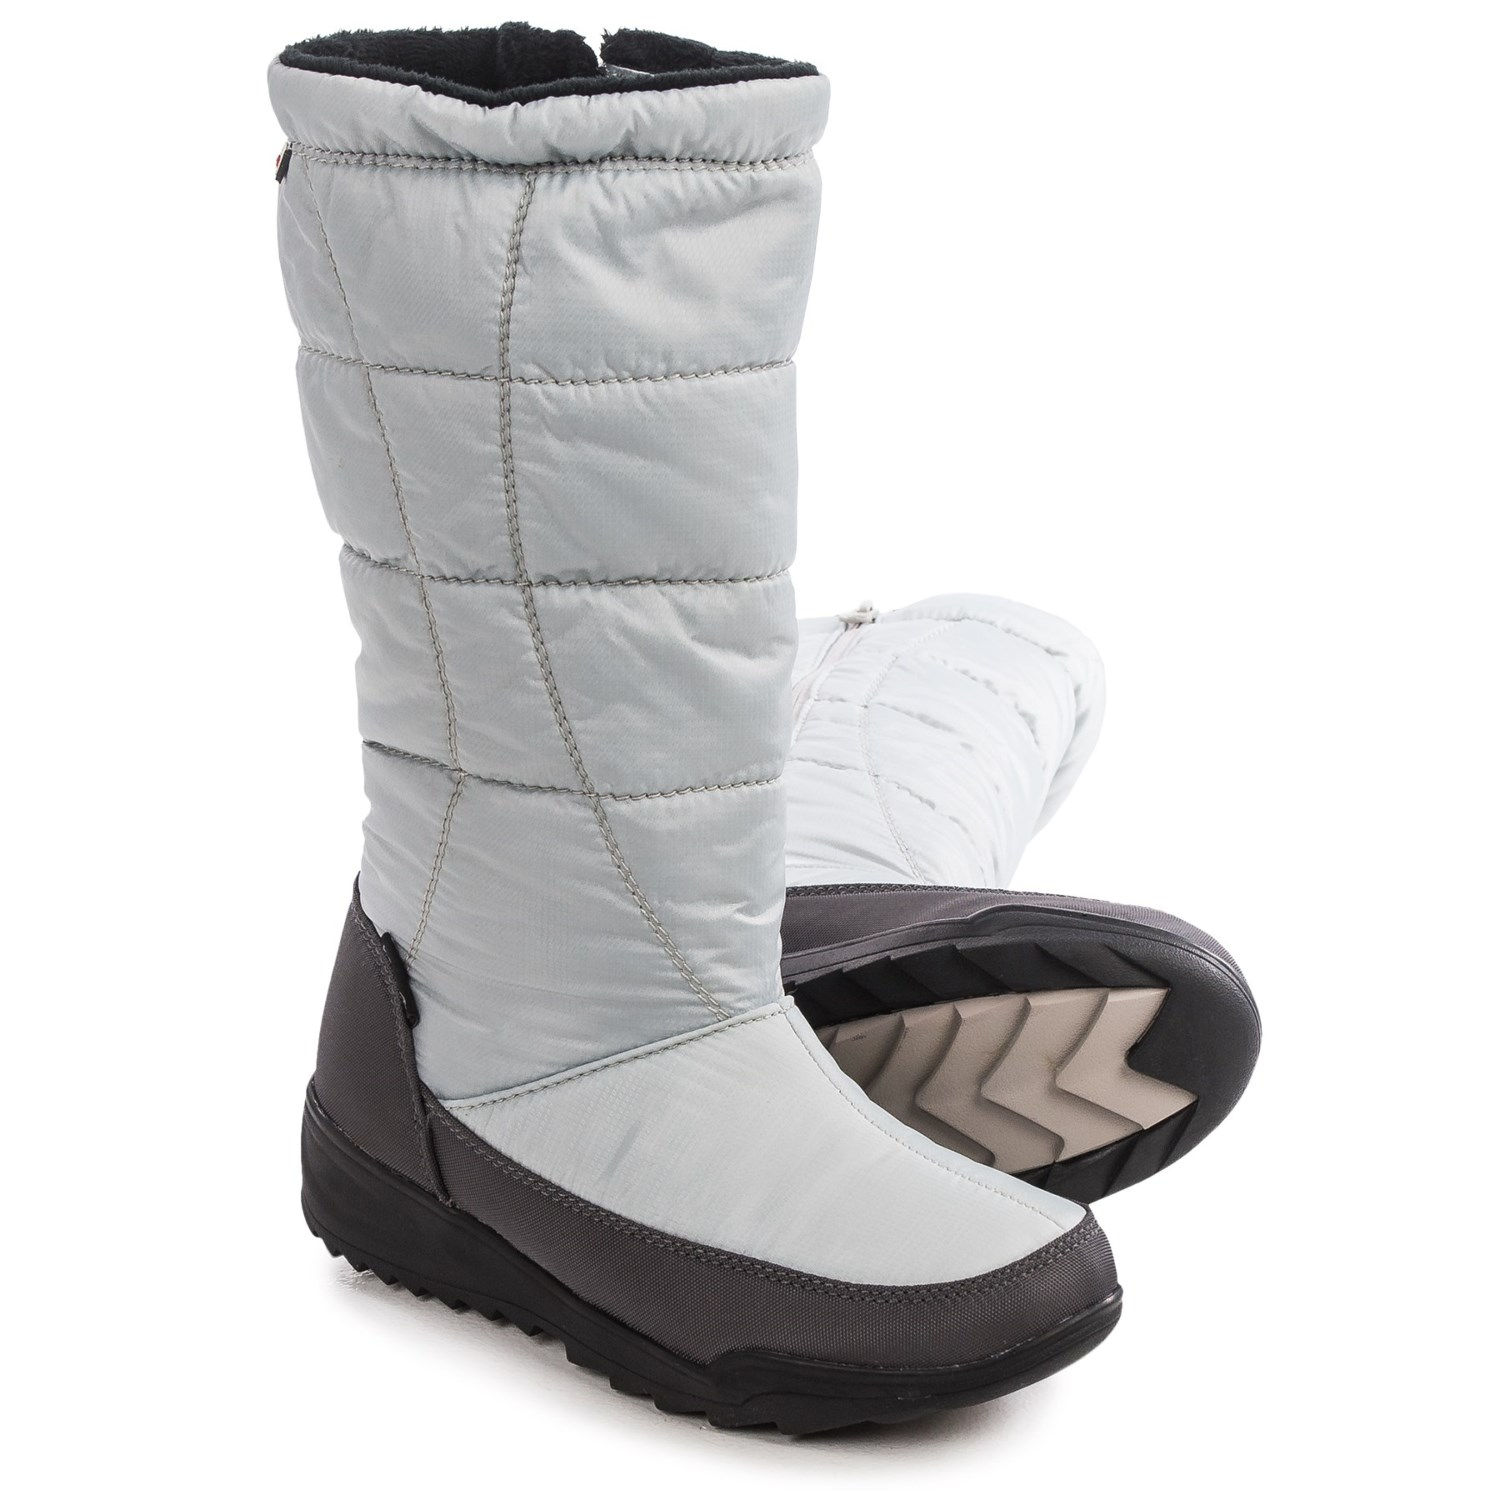 Kamik Nice Snow Boots (For Women) - Save 73%